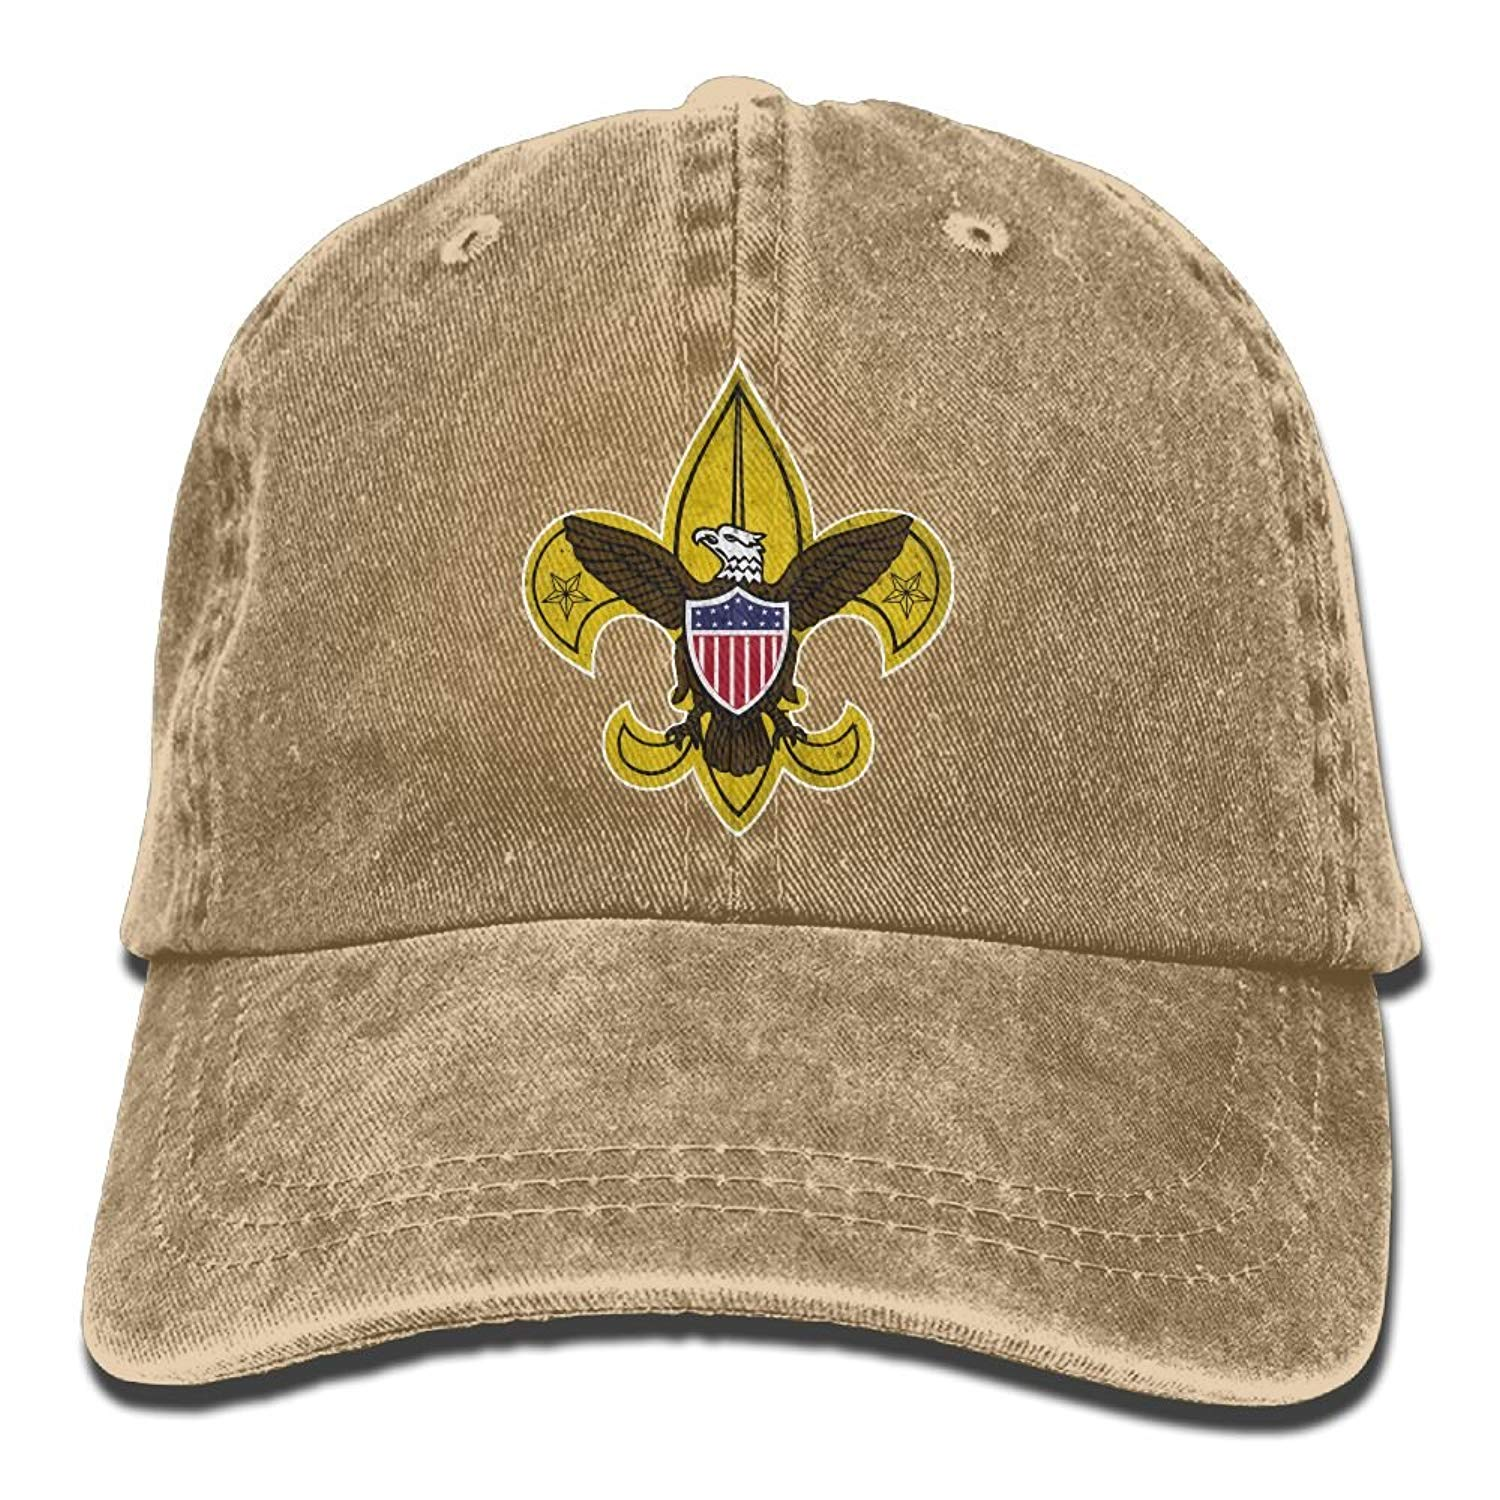 0d35a1f8c8943 Get Quotations · Boy Scouts Retro Unisex Adjustable Cotton Denim Hat Washed  Retro Gym Hat FS DMhcap Cap Hat